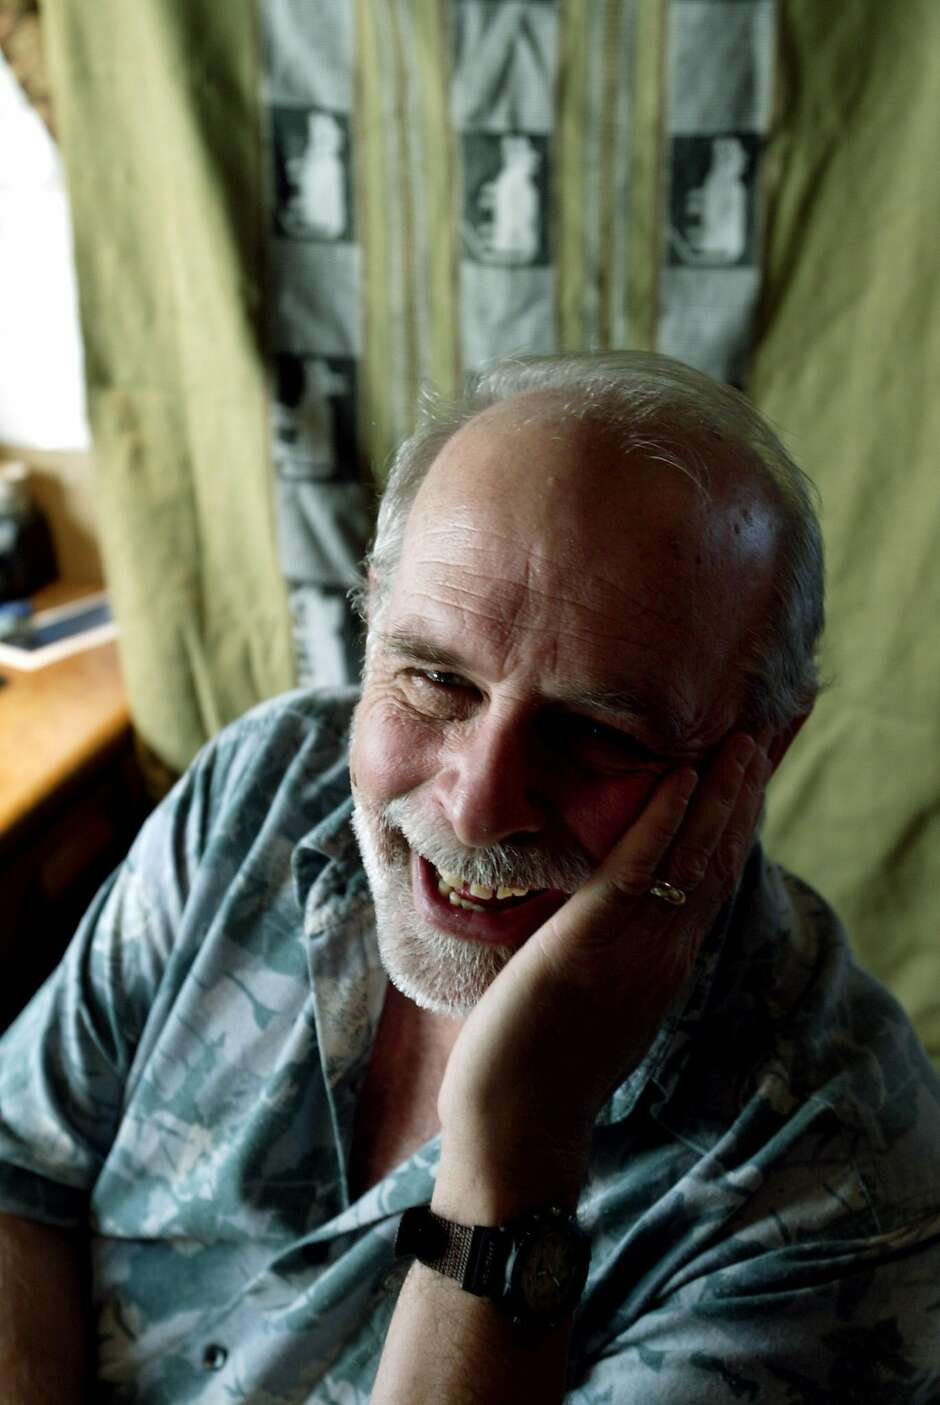 San Francisco peace activist Lee Thorn has died at 77.